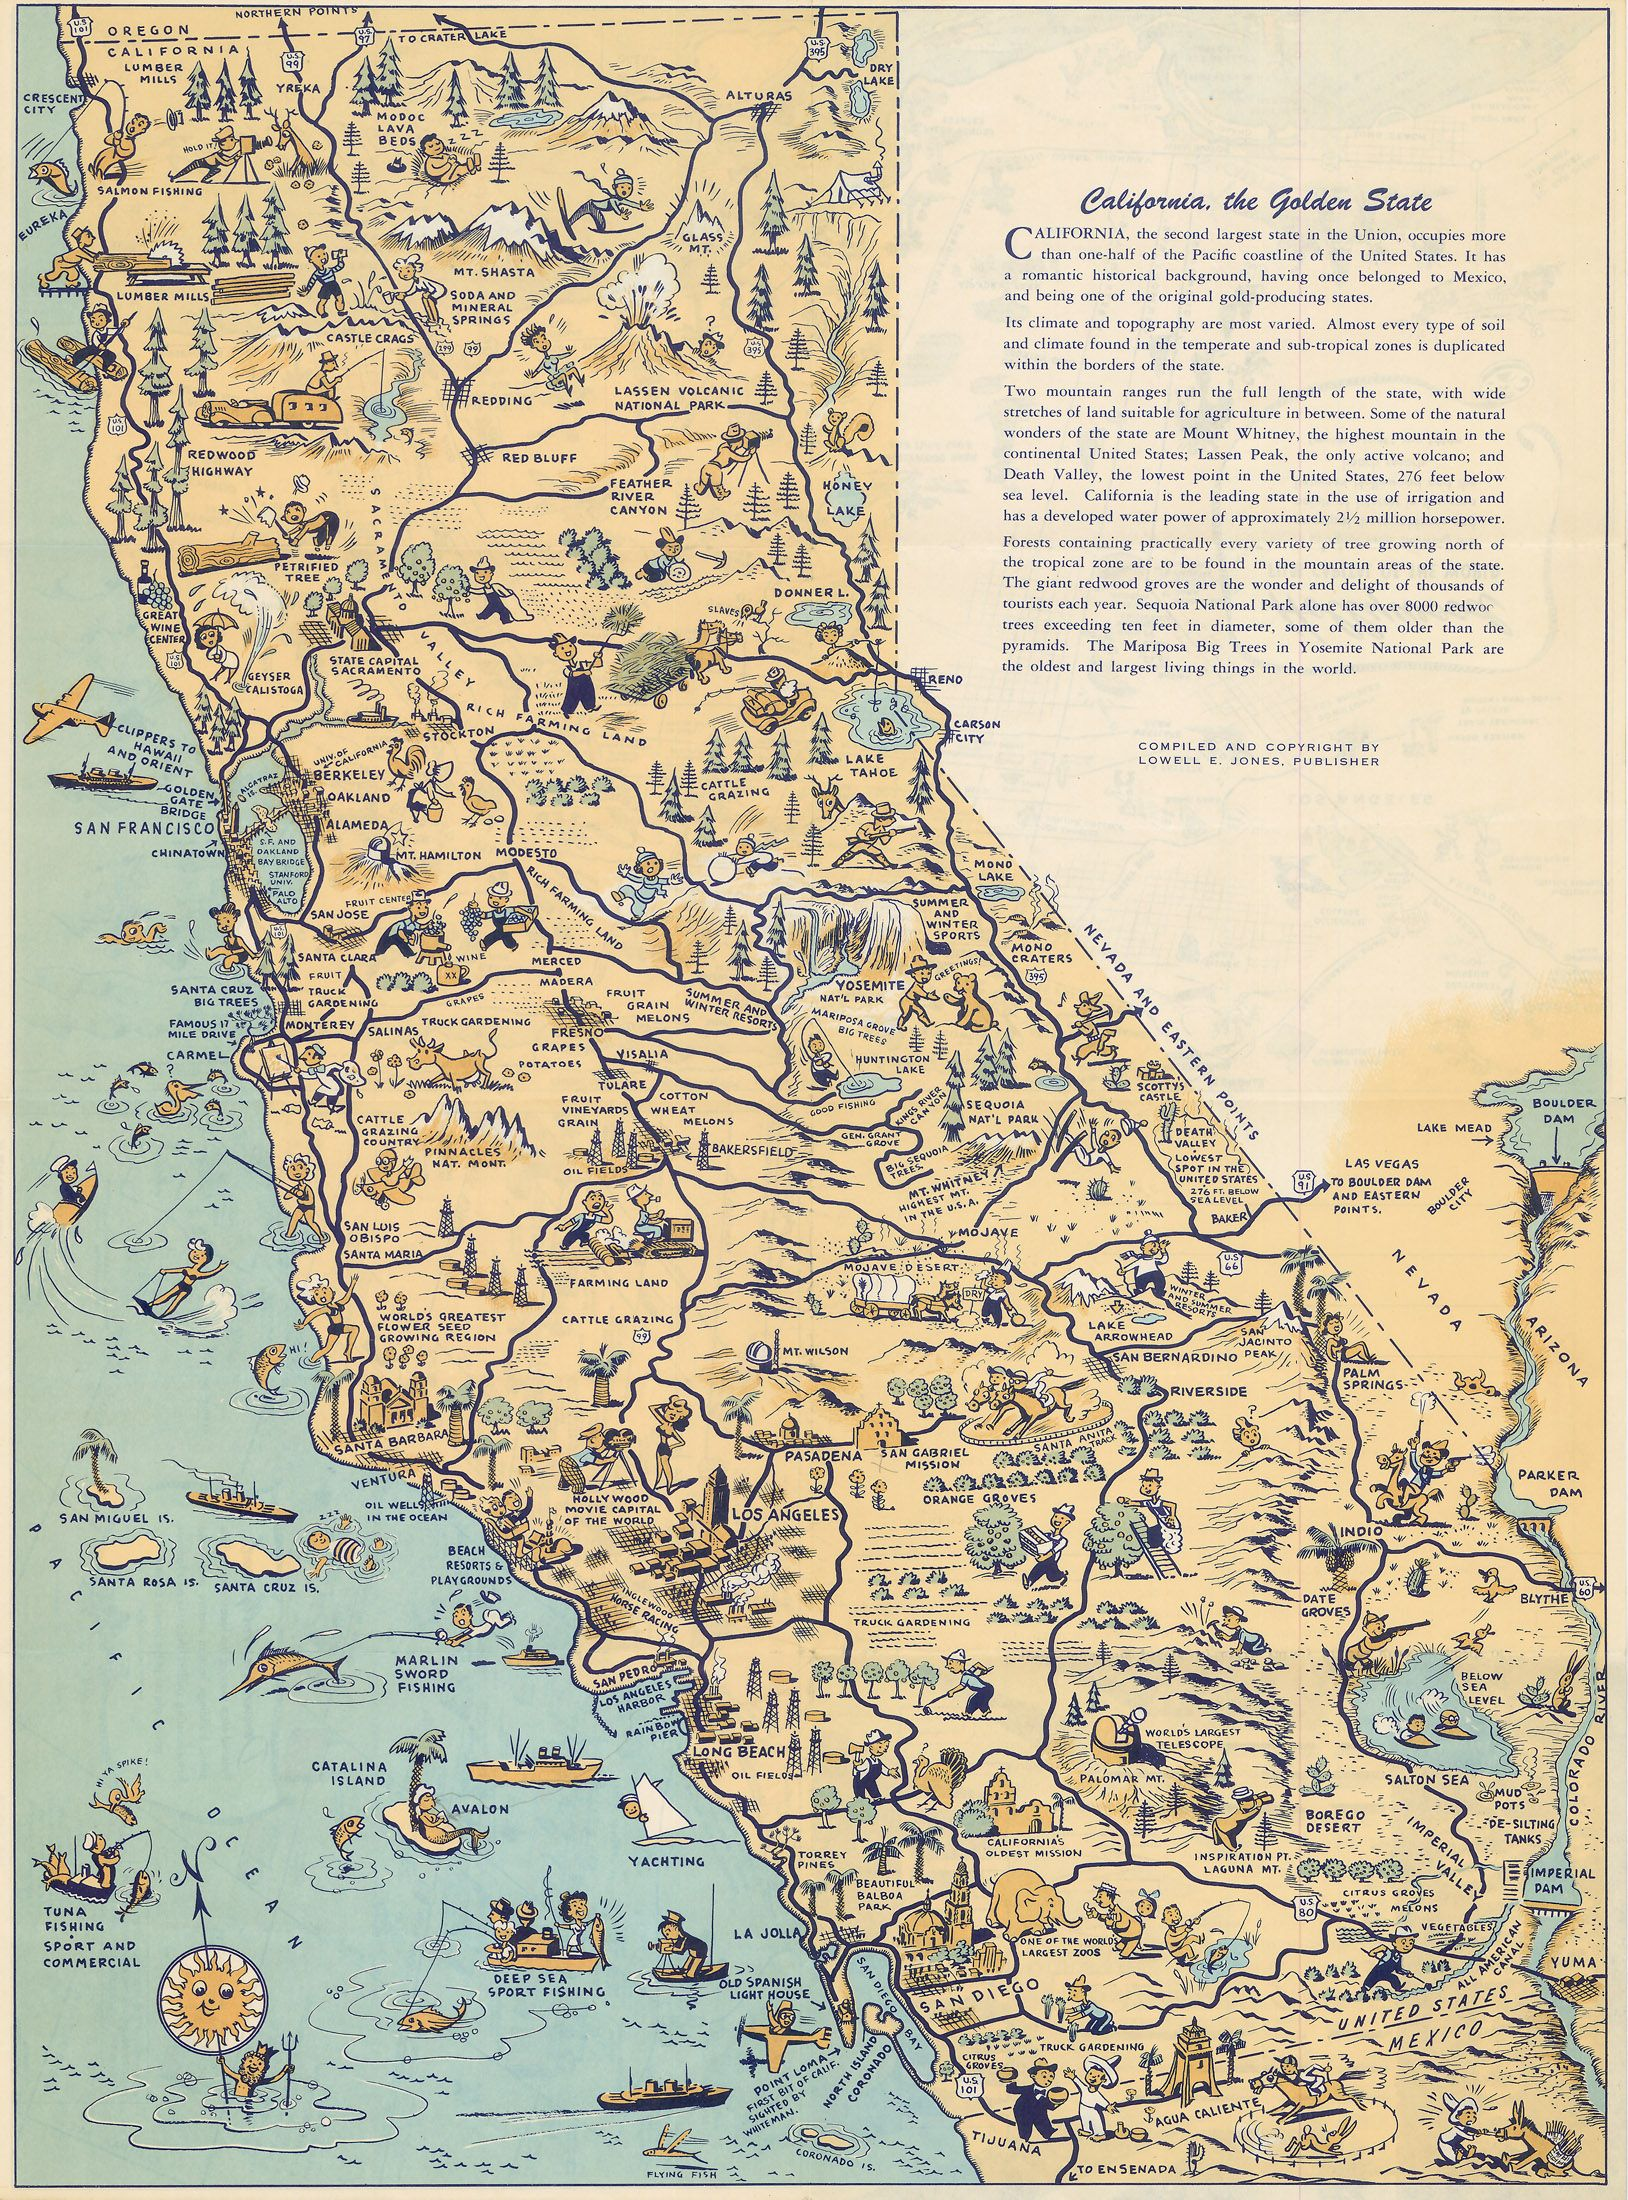 California Map Hollywood.Whimsical Old Map Depicts California At A Time When Hollywood Was A